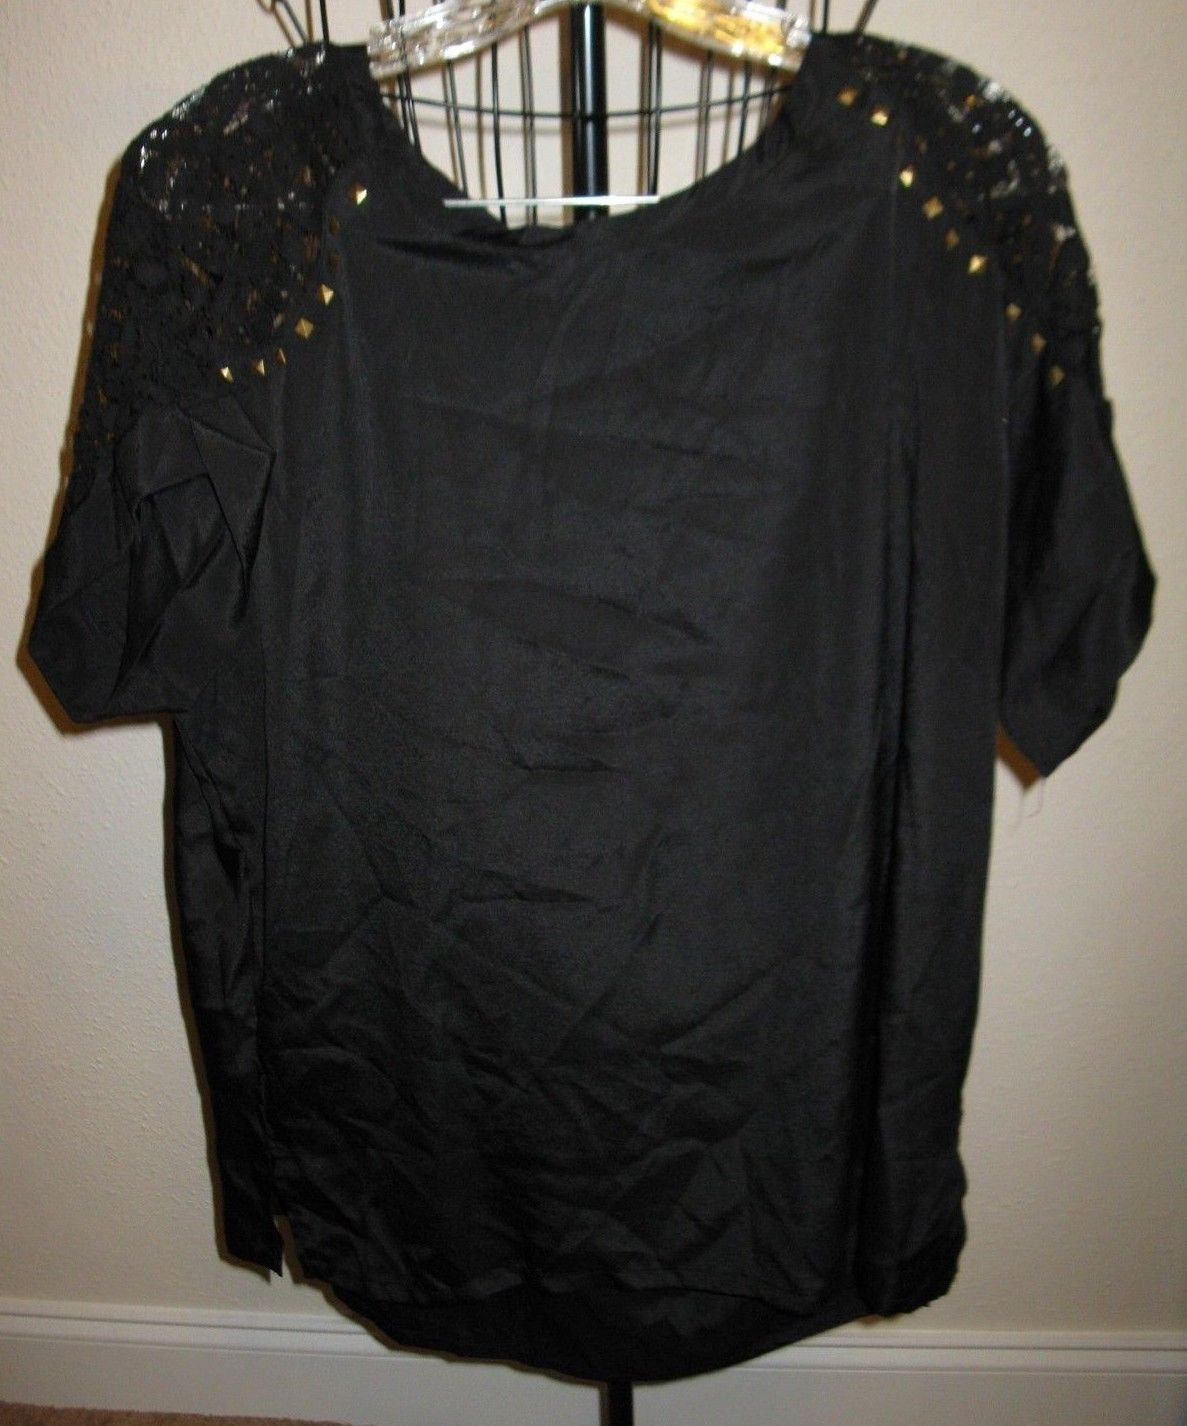 Black Sleeveless Top, Lace Shoulders & Gold Studs by Concepts NY Size XL #X247